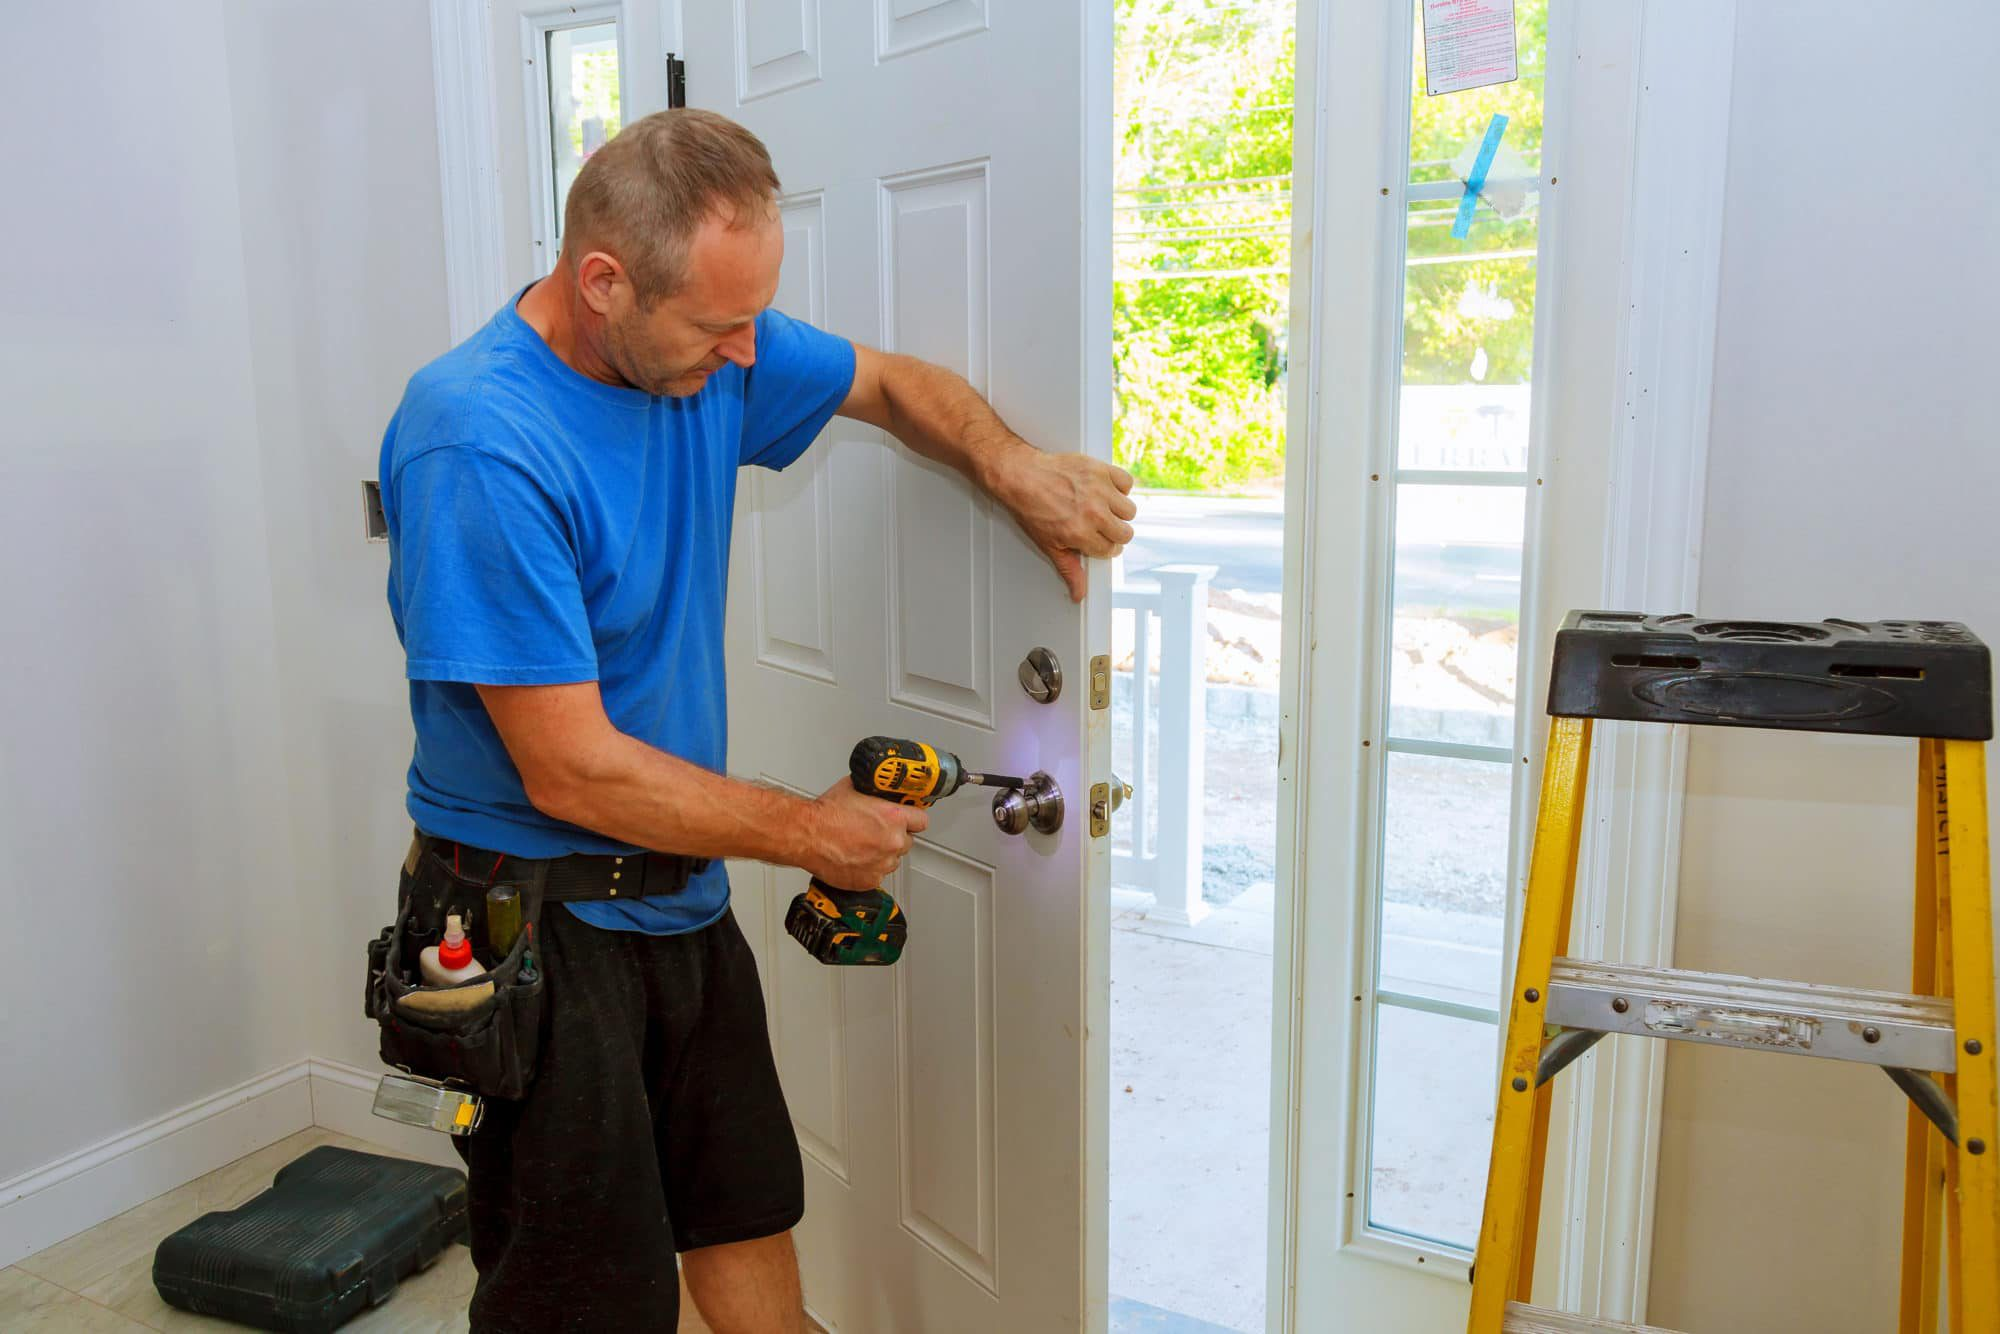 Carpenter installs new door and new door hardware to keep the Arizona heat out and lower the utility bills